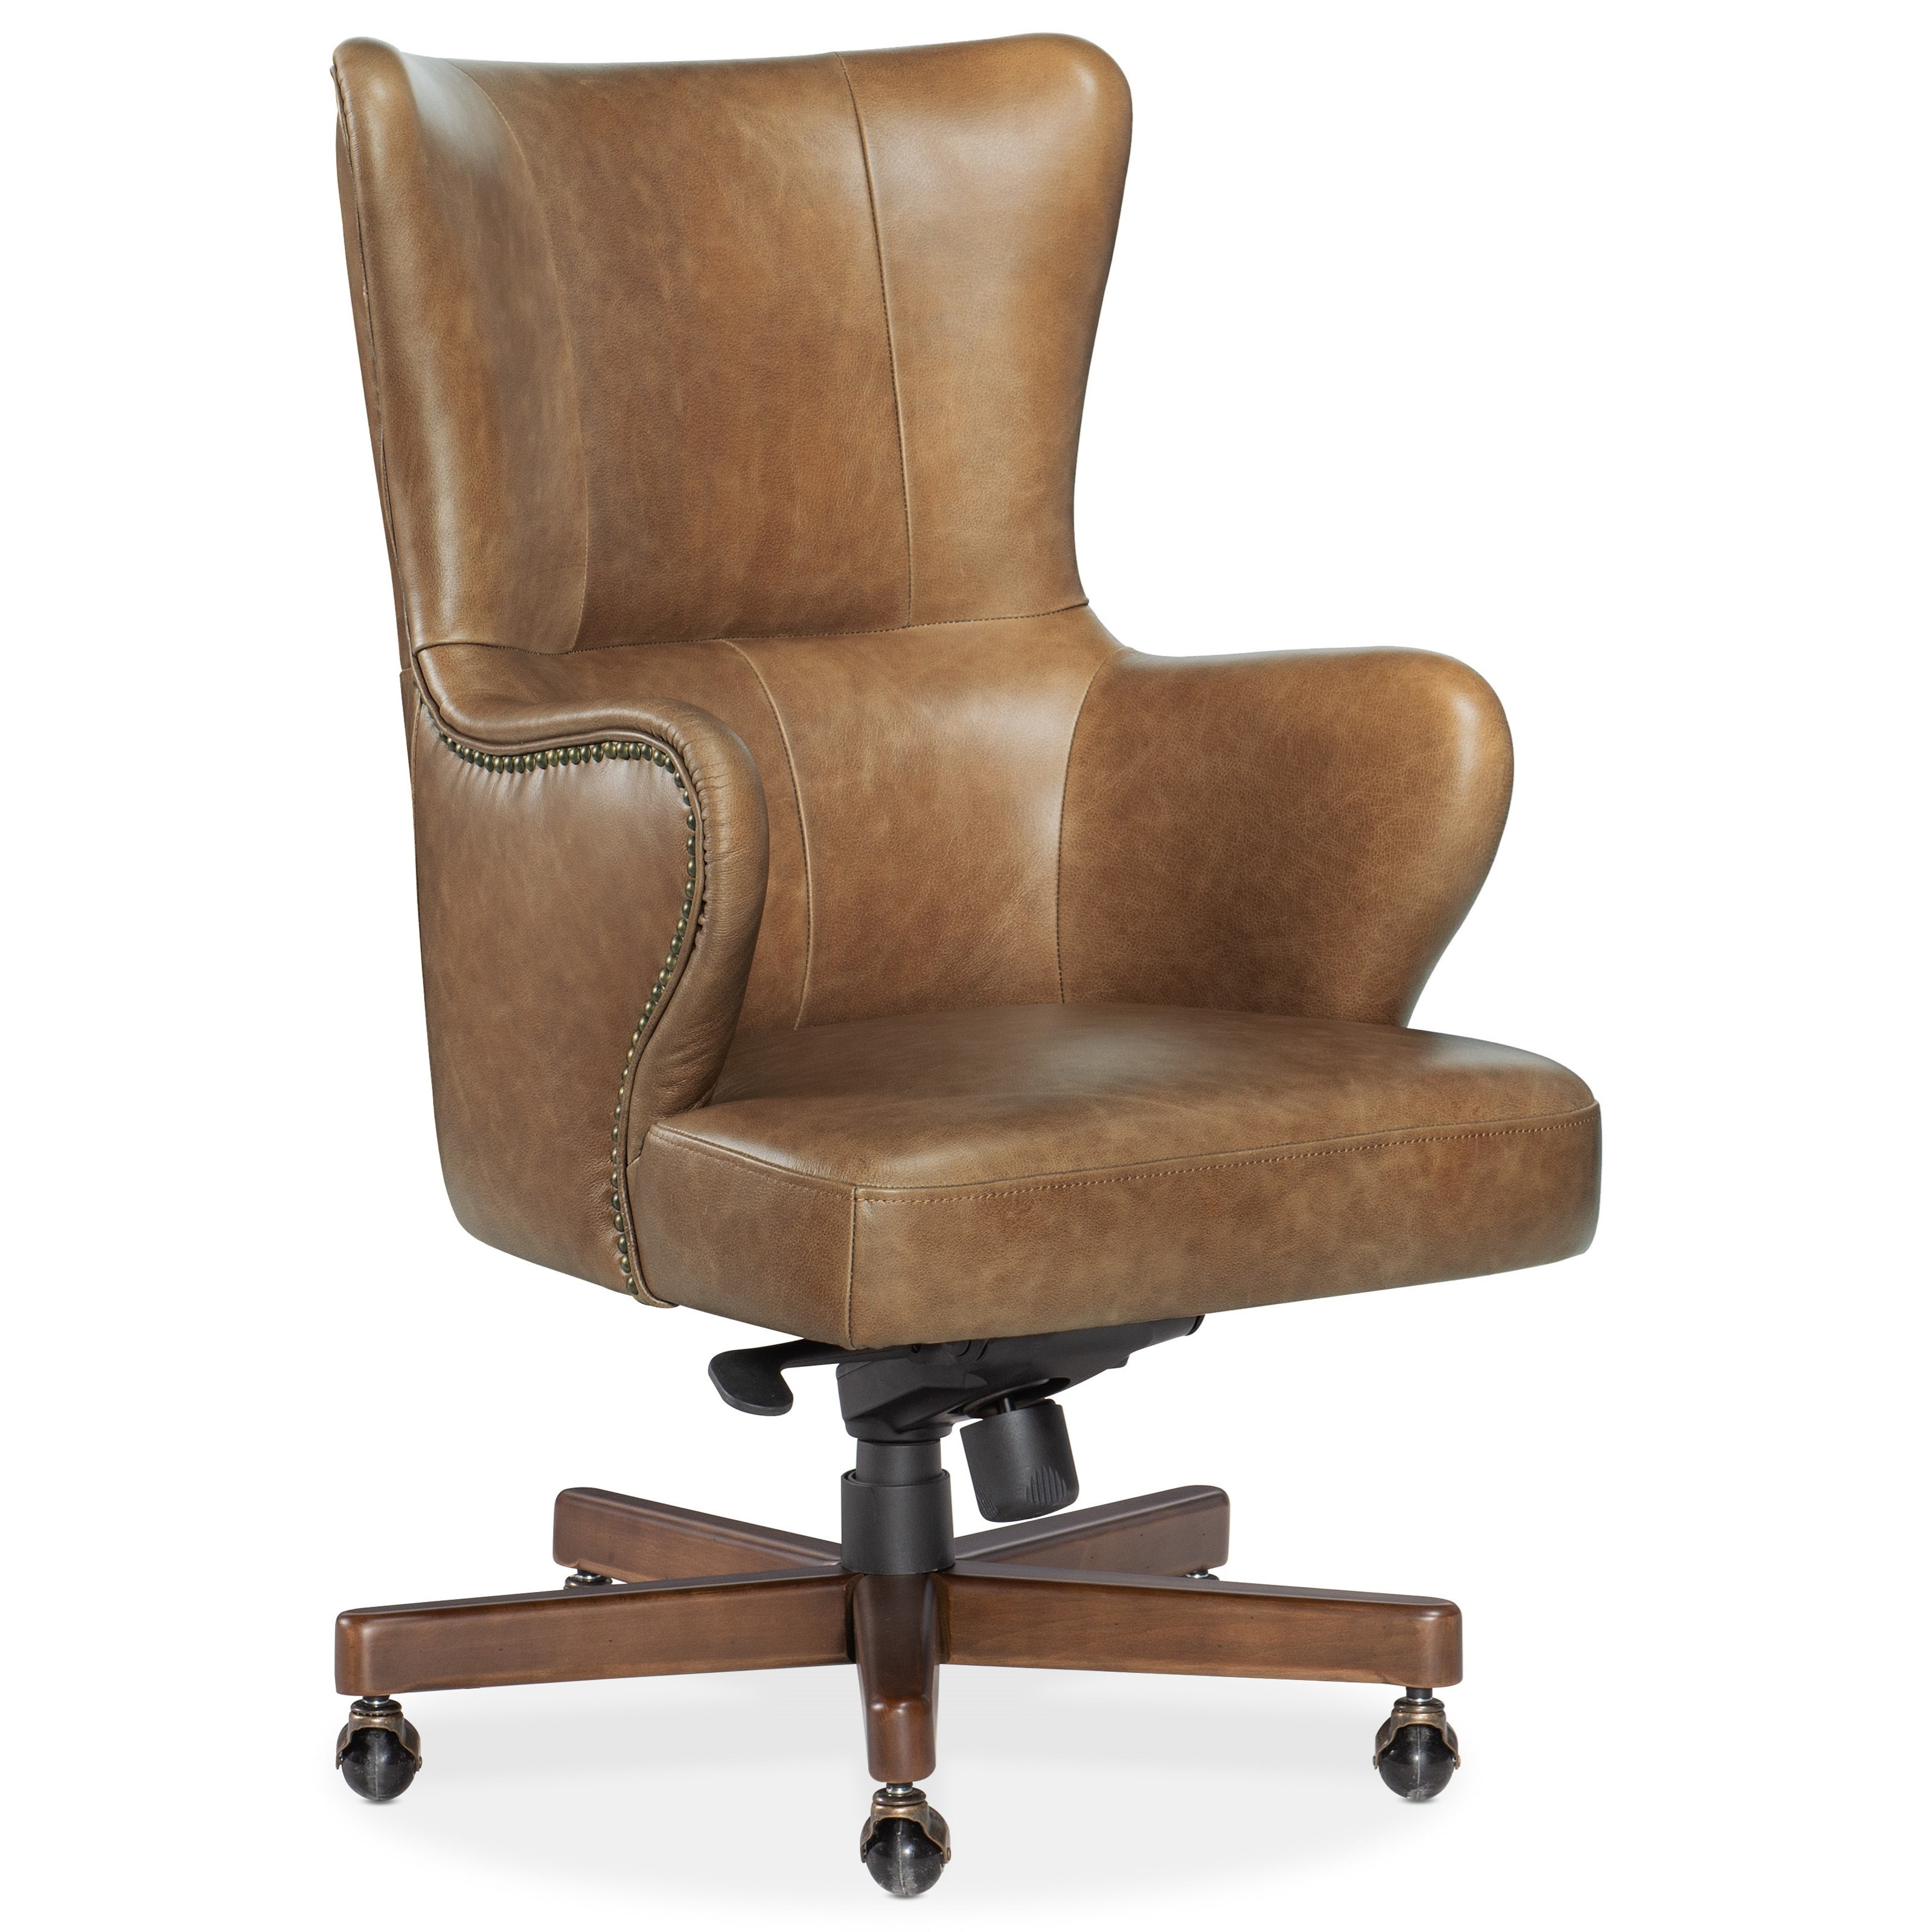 Executive Seating Amelia Executive Swivel Tilt Chair by Hooker Furniture at Mueller Furniture